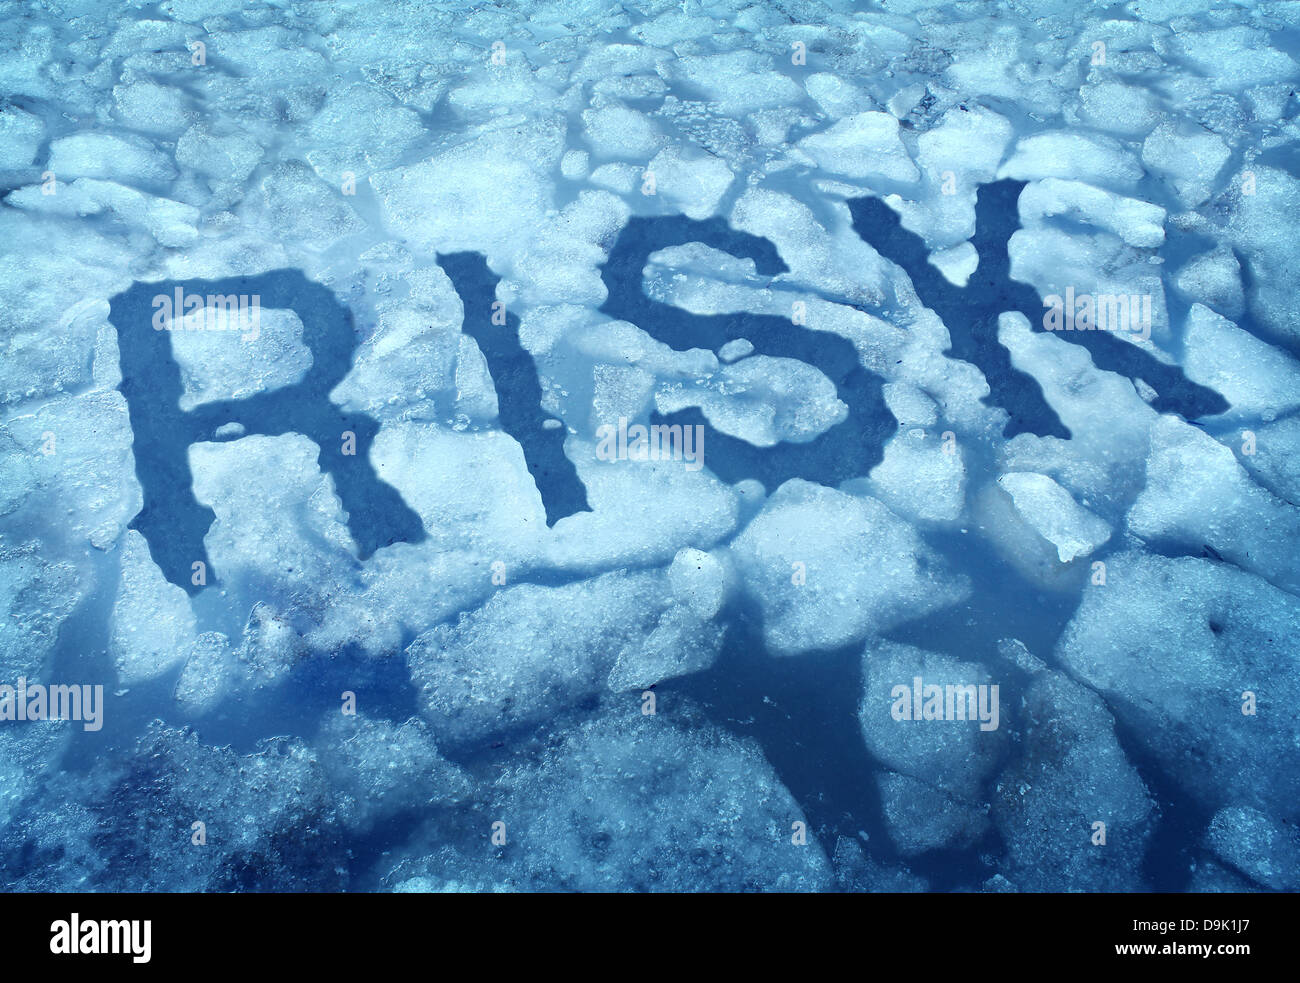 Risk and danger as a thin ice concept with the word imbedded in a cracked frozen lake warning any person to be very - Stock Image